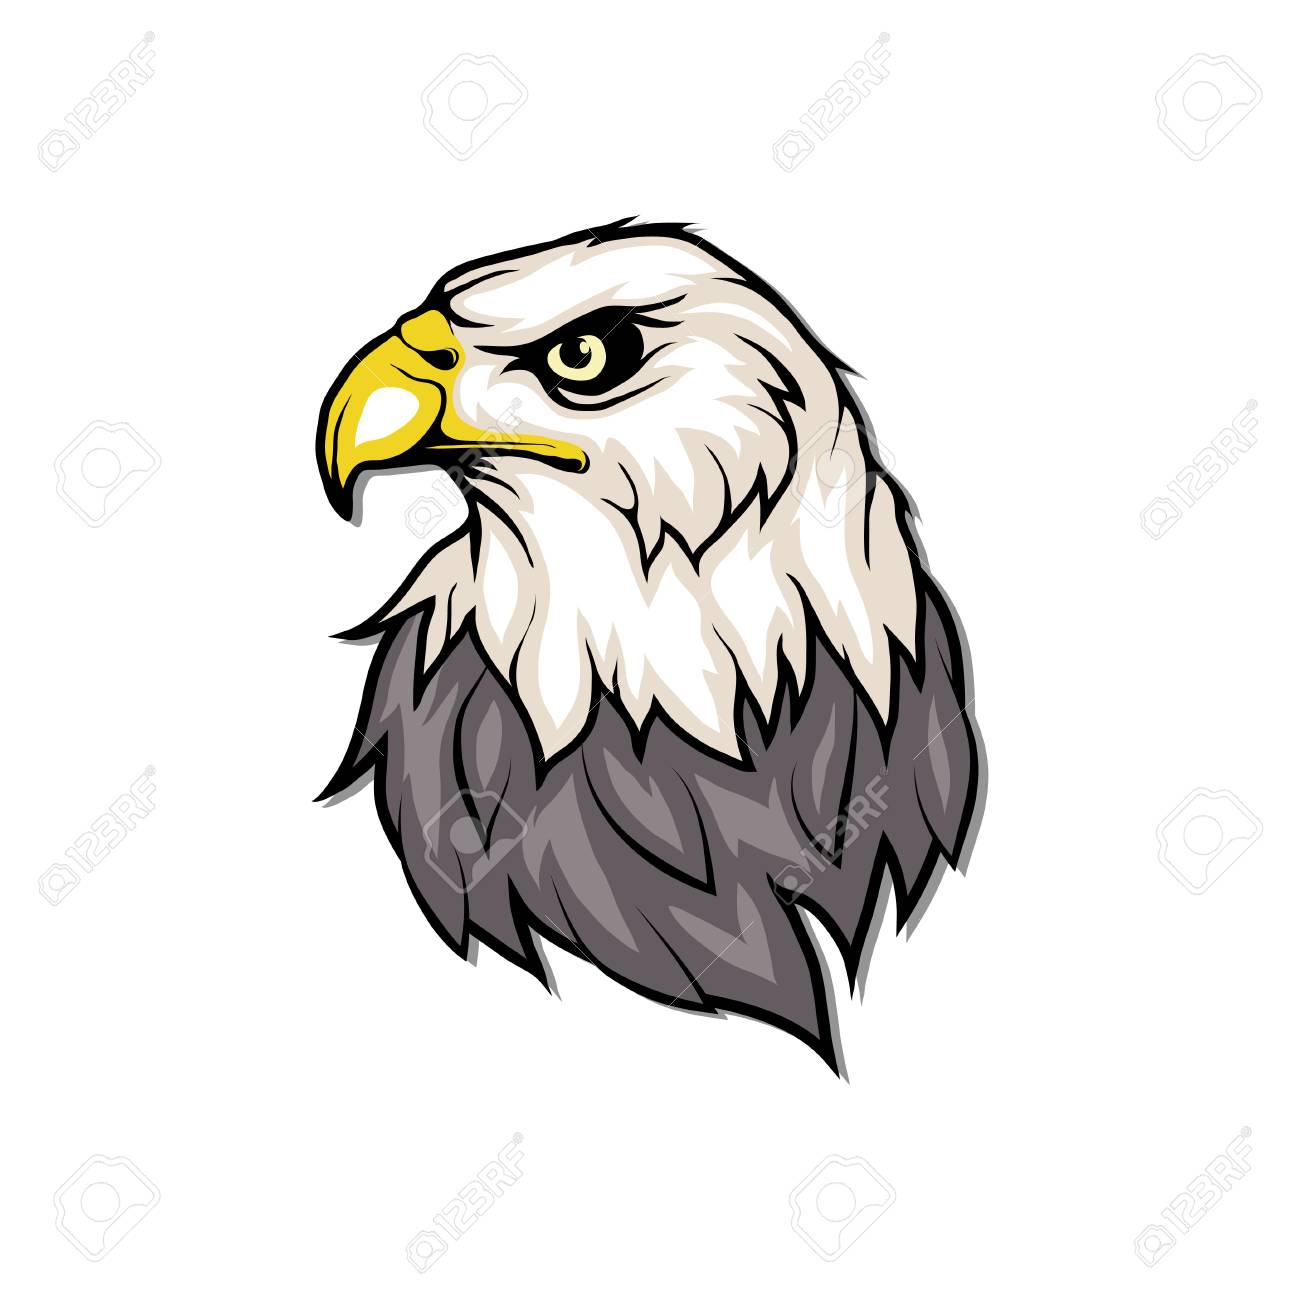 Bald eagle icon wild birds drawing head of an eagle vector graphics to